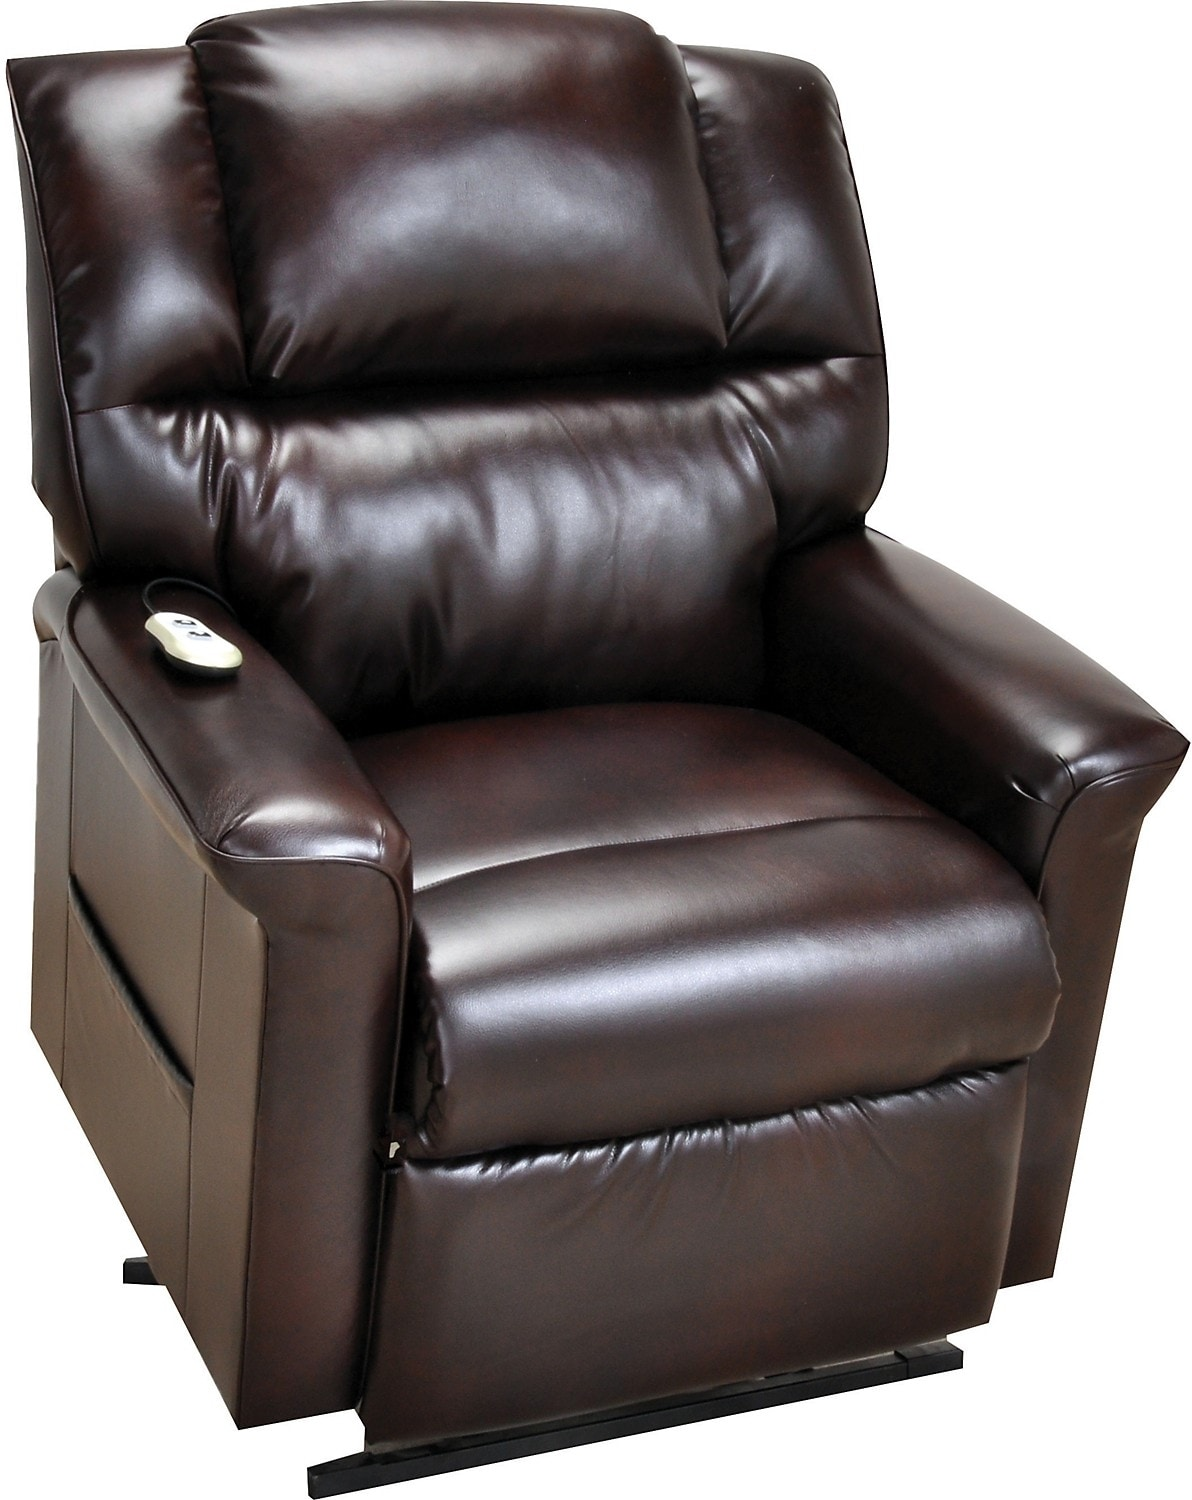 Bonded Leather 3-Position Power Lift Recliner - Brown